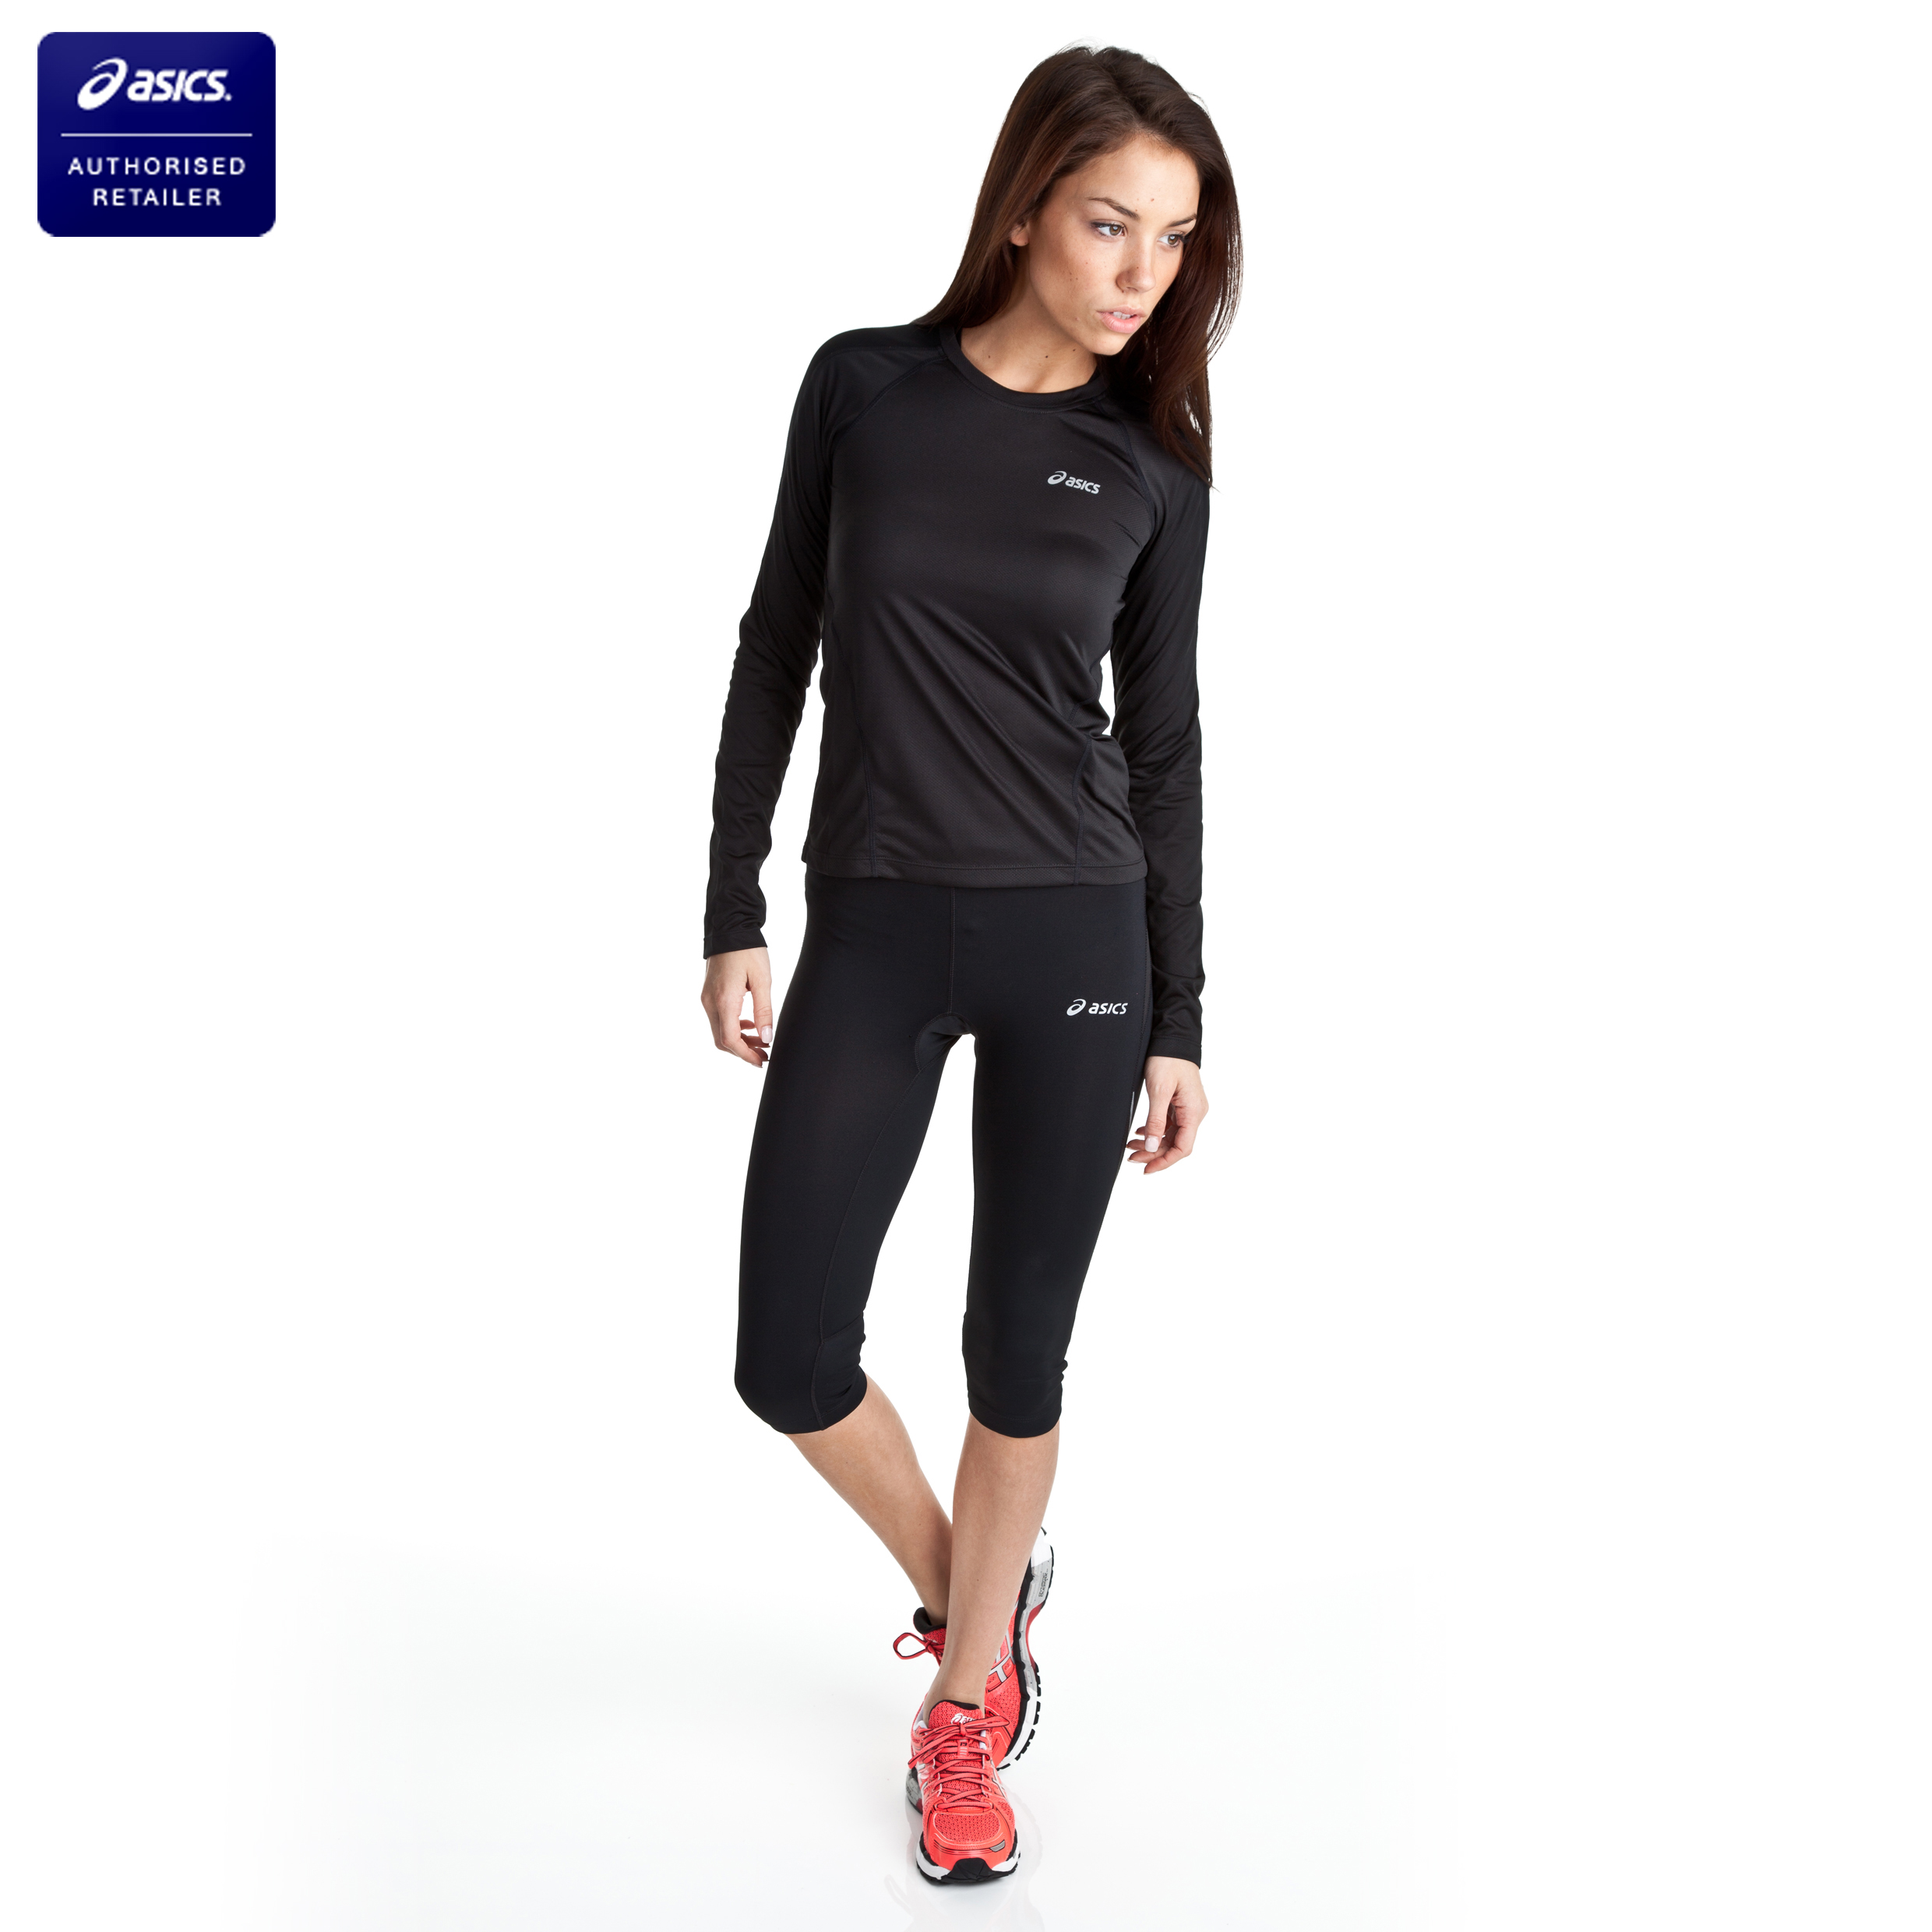 Asics Vesta Knee Tight - Black - Womens